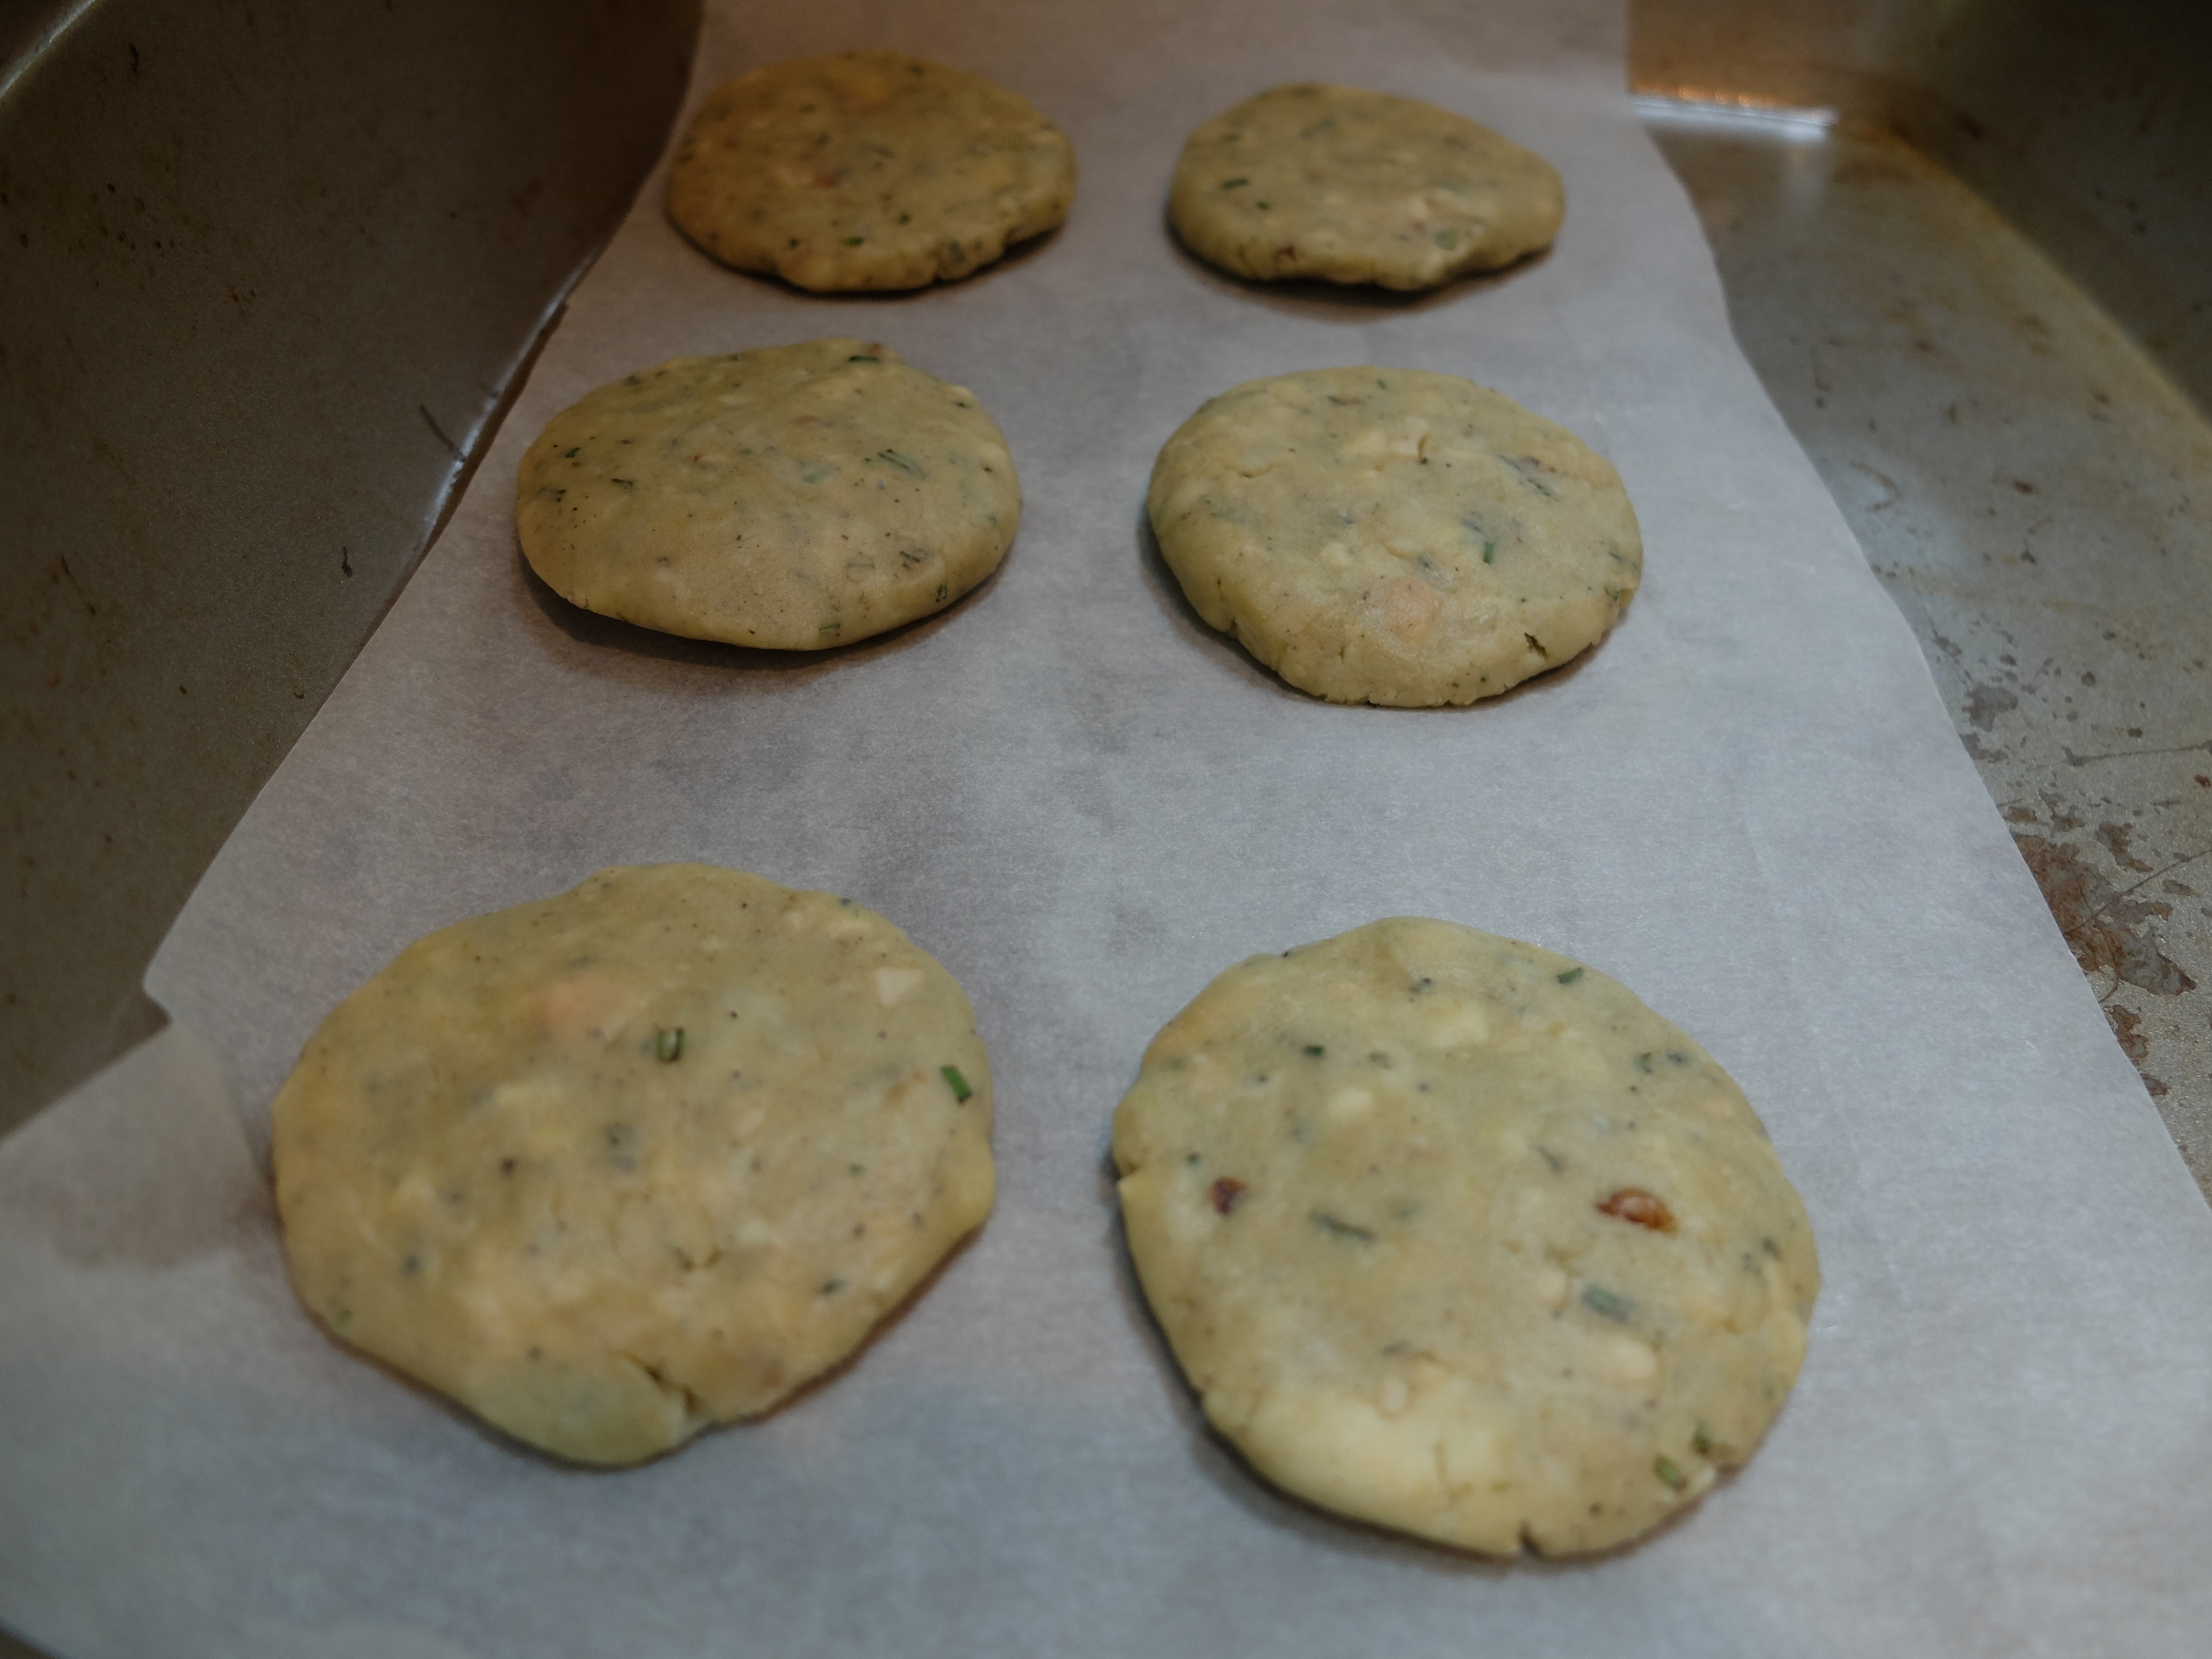 Bake for 10-15 minutes until they are lightly browned. They will still ...